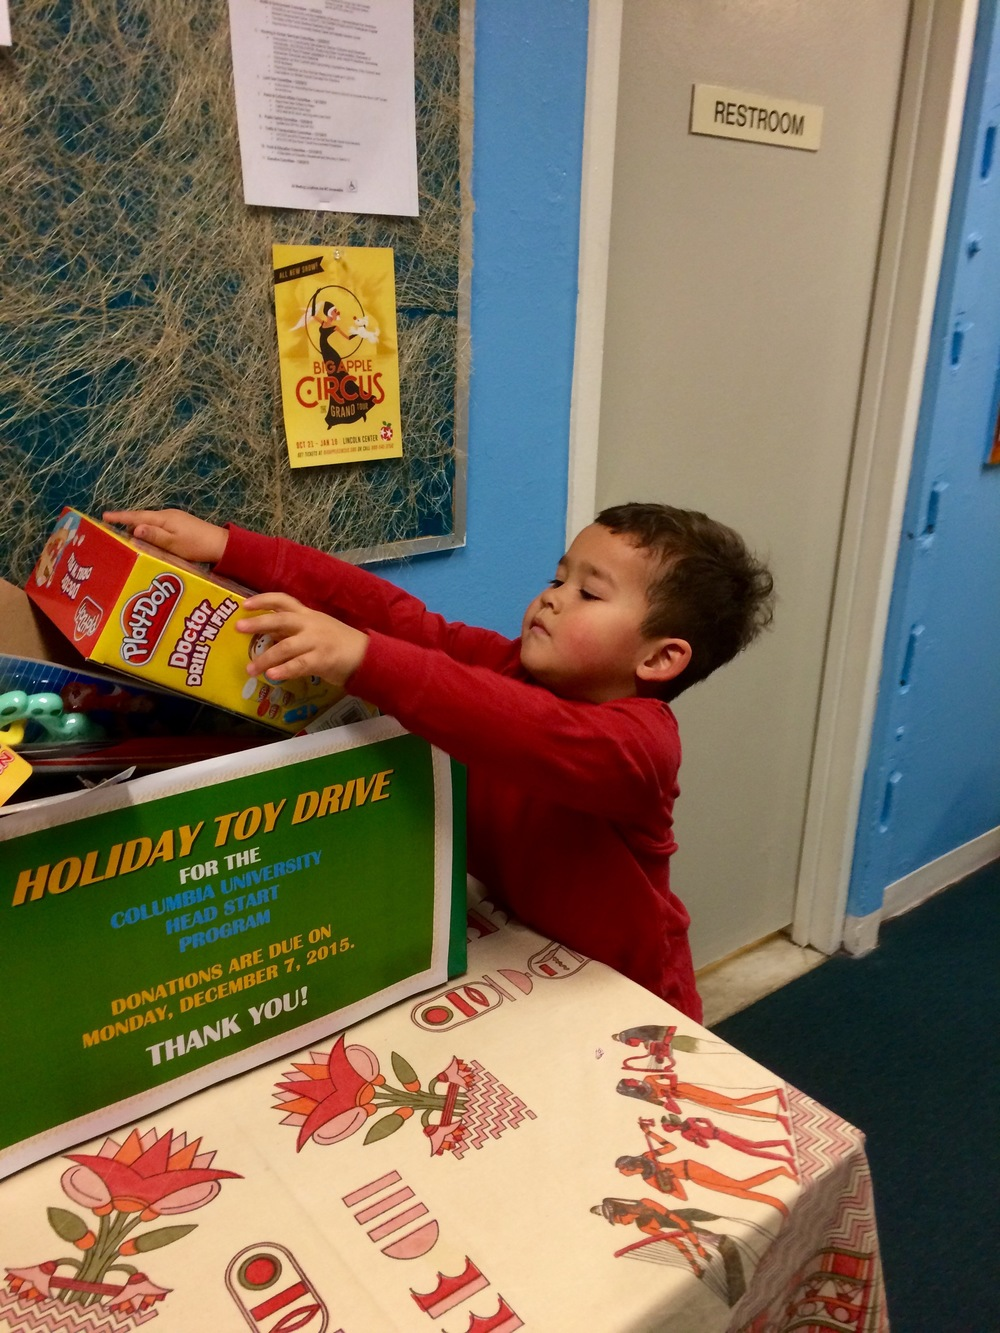 Donating a toy to Milo's school Holiday Toy Drive for the local Head Start program.